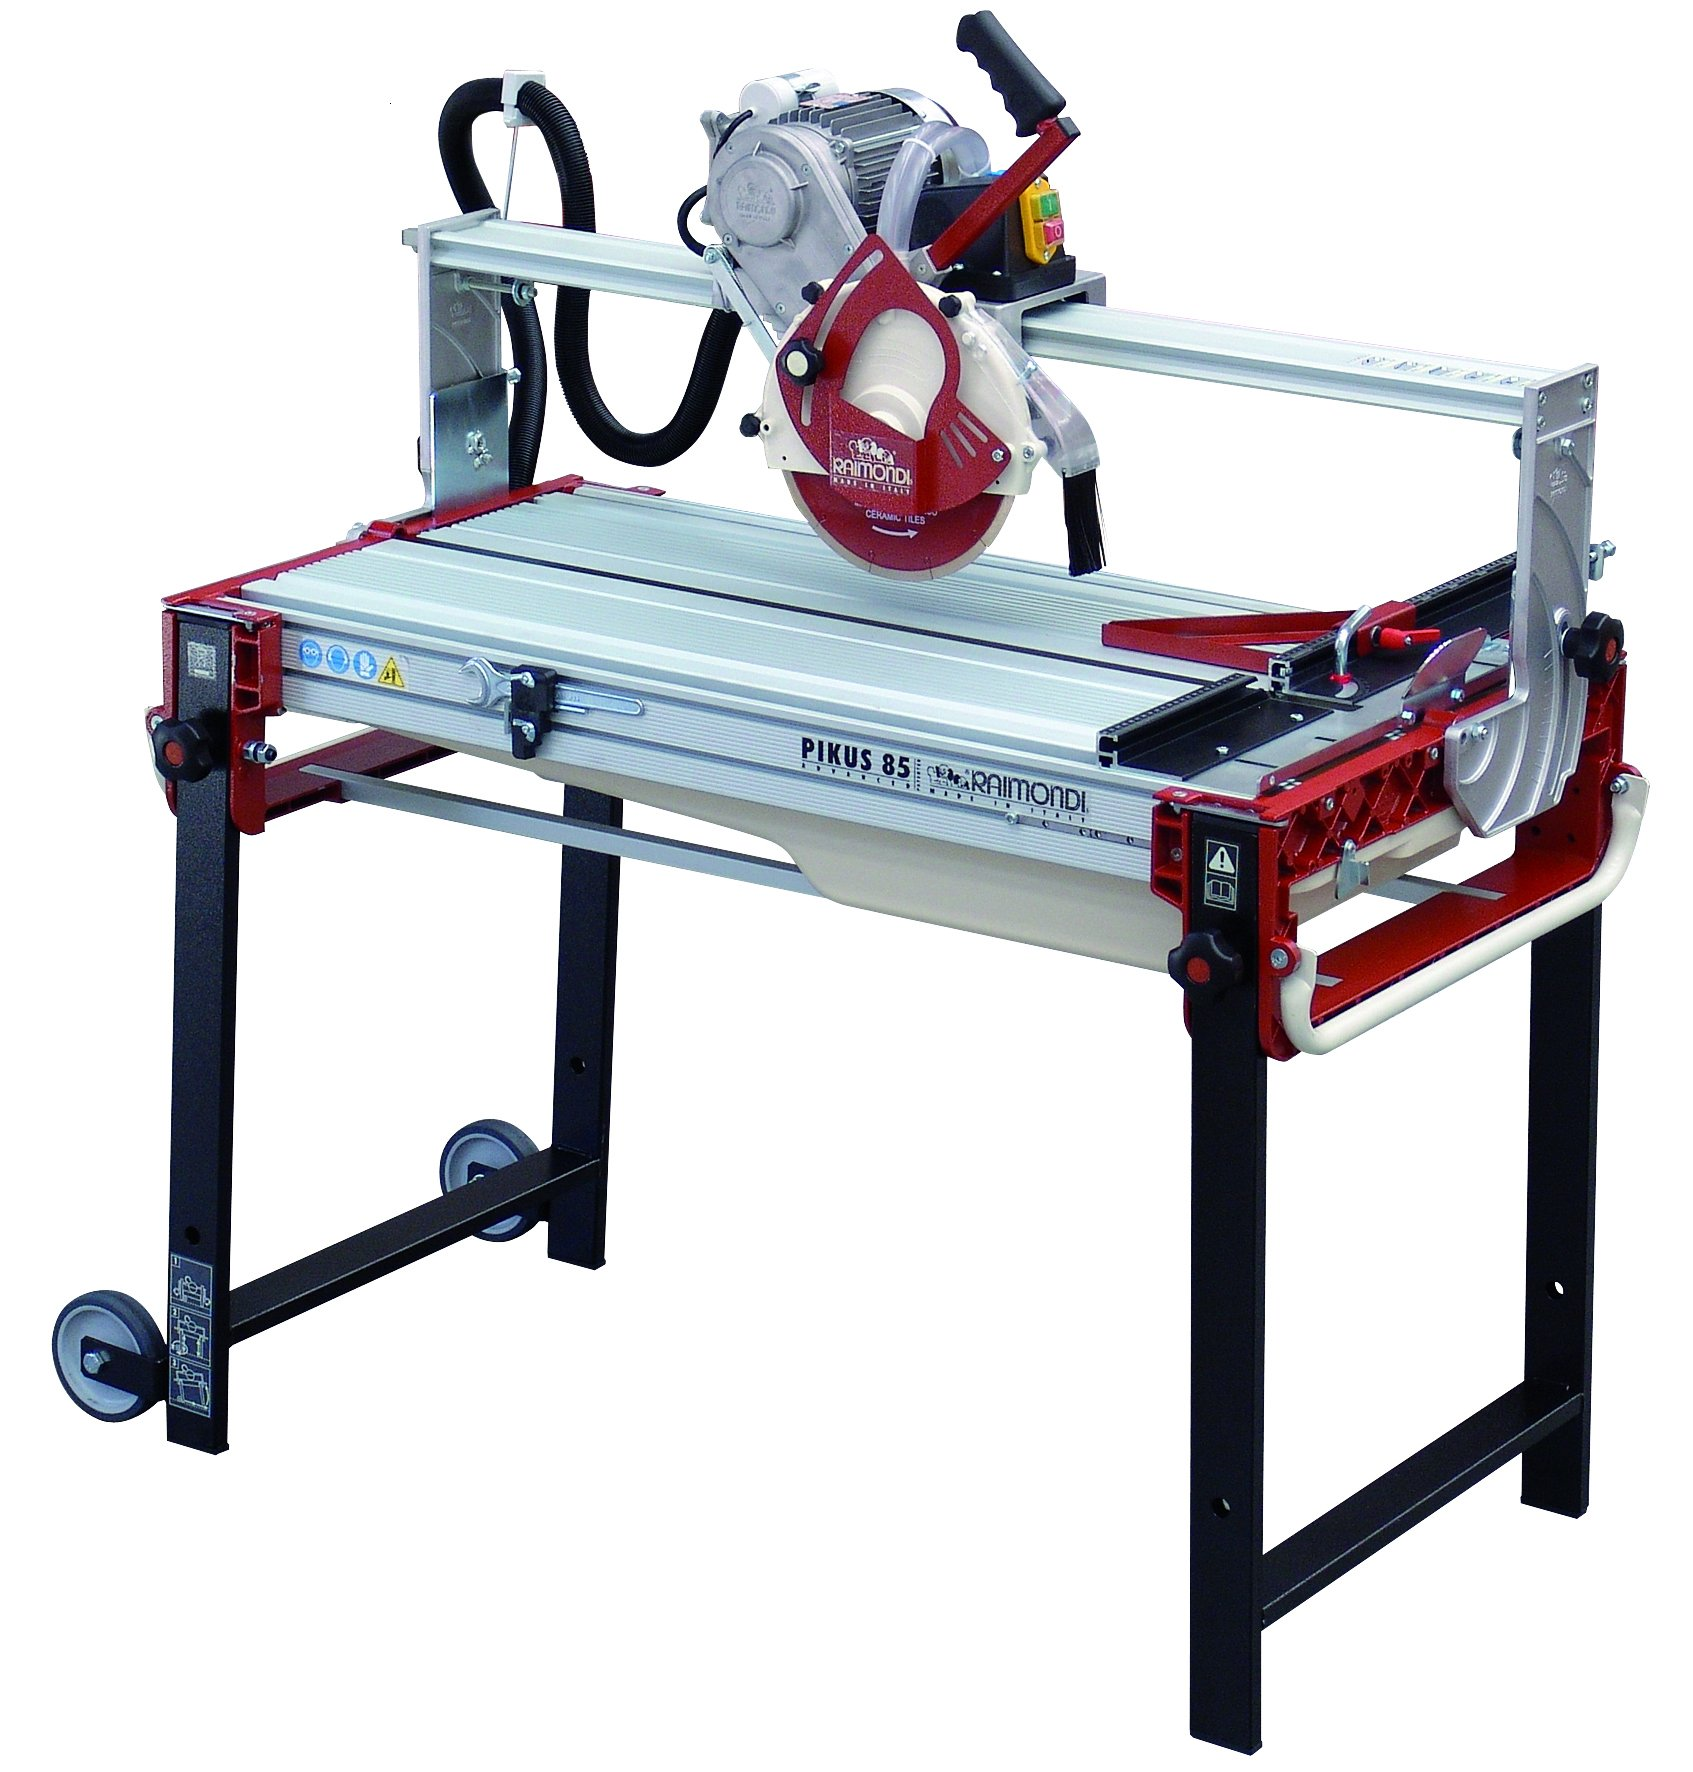 Raimondi Gladiator 85 34'' Wet Tile Bridge Saw WSGLA85